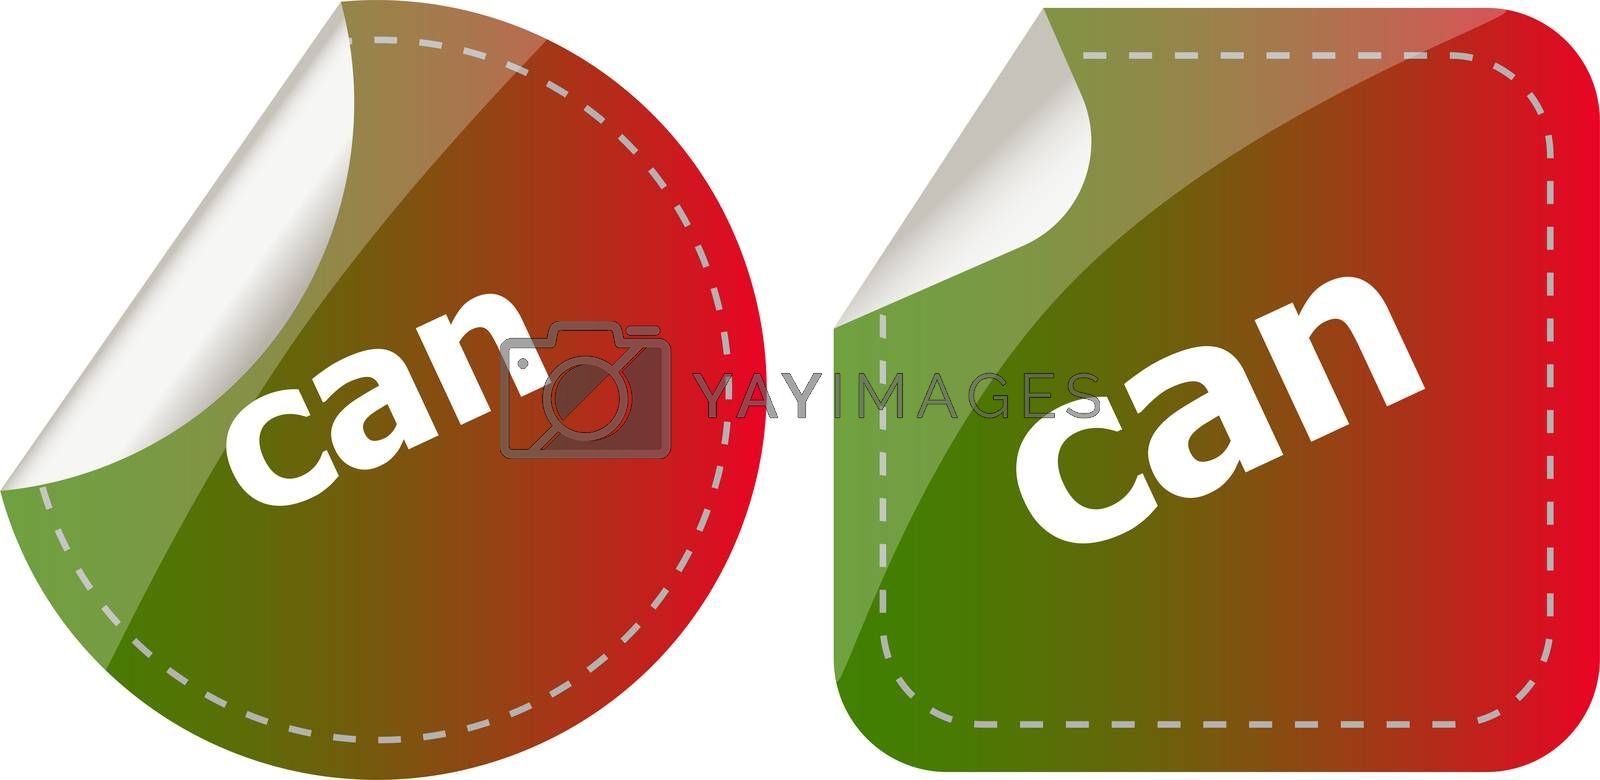 can word stickers set, web icon button